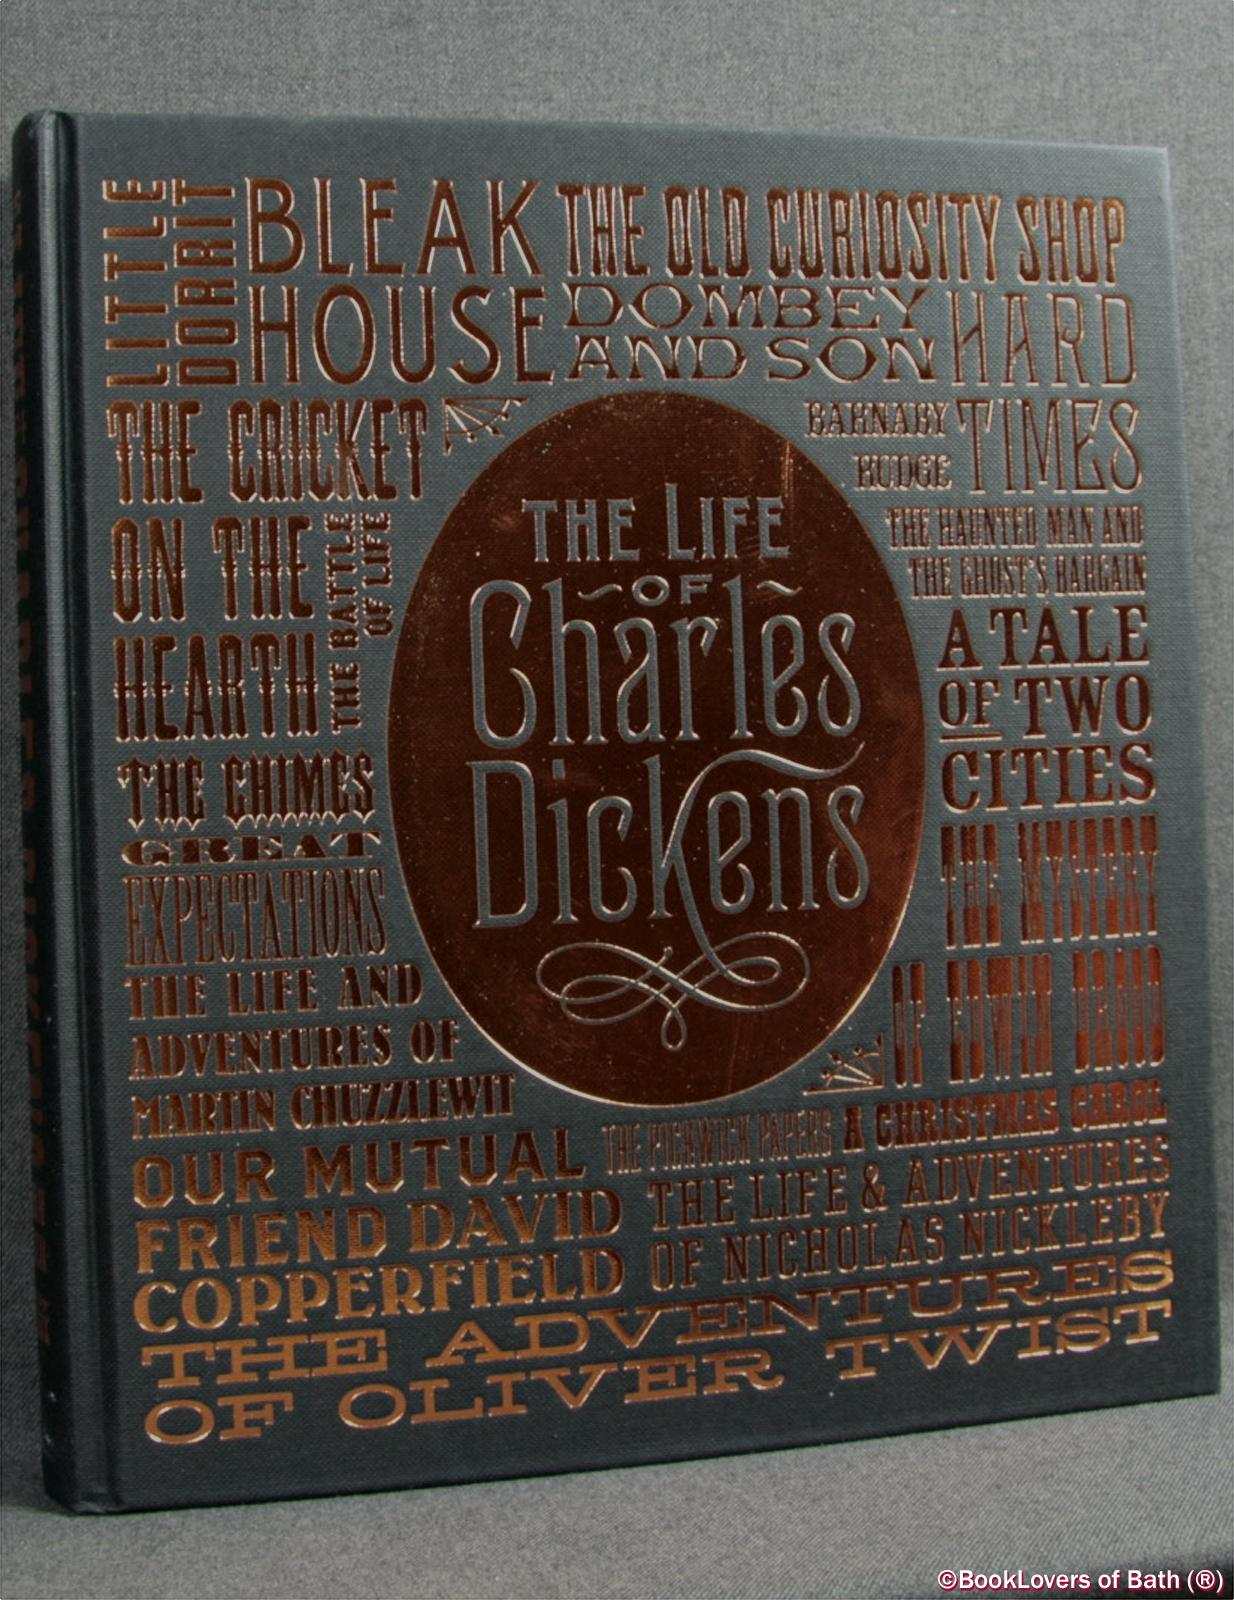 The Life of Charles Dickens: The Illustrated Edition - John Forster